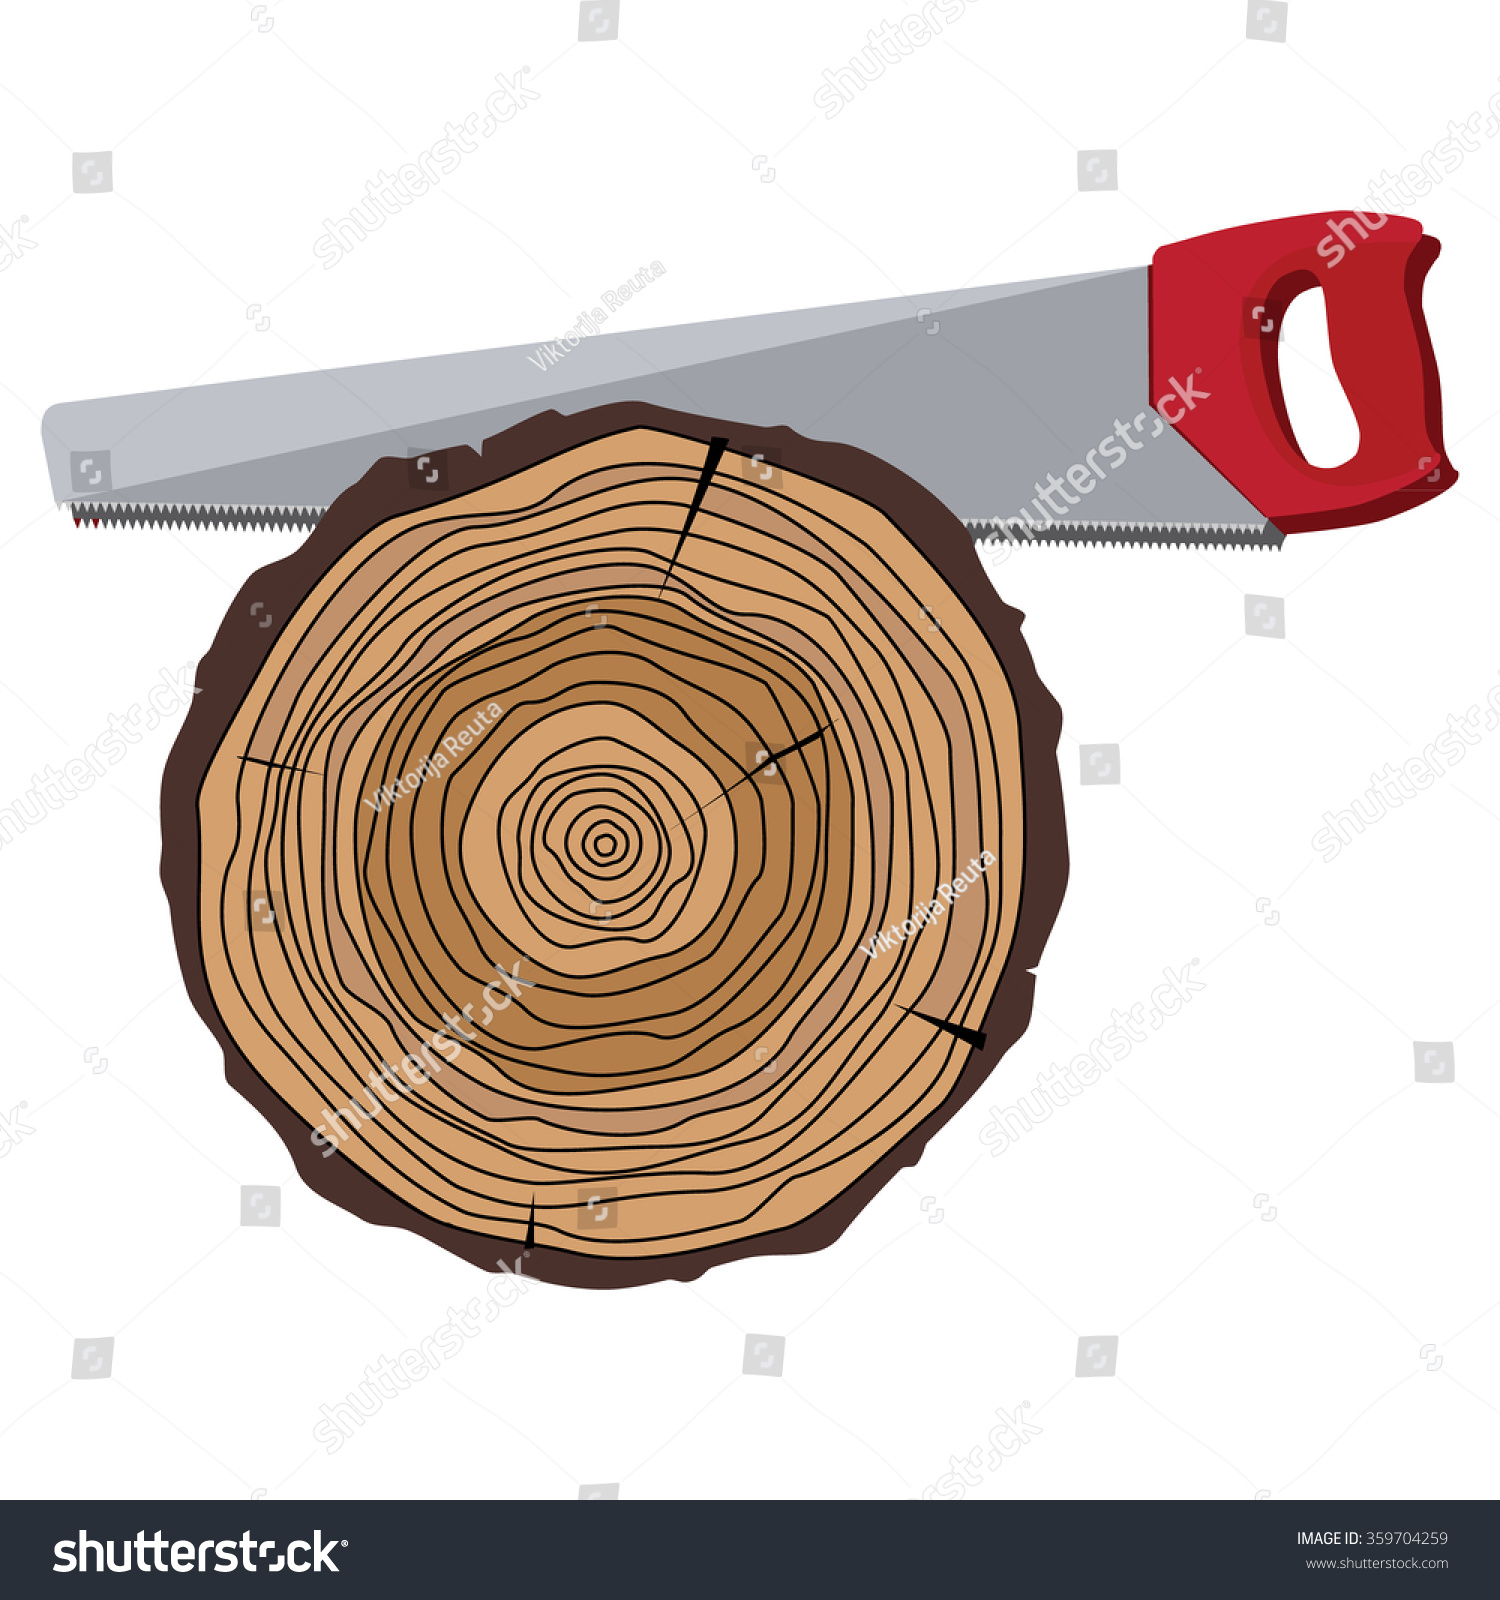 hight resolution of vector illustration cutting tree with hand saw tree rings saw cut tree trunk annual tree growth rings